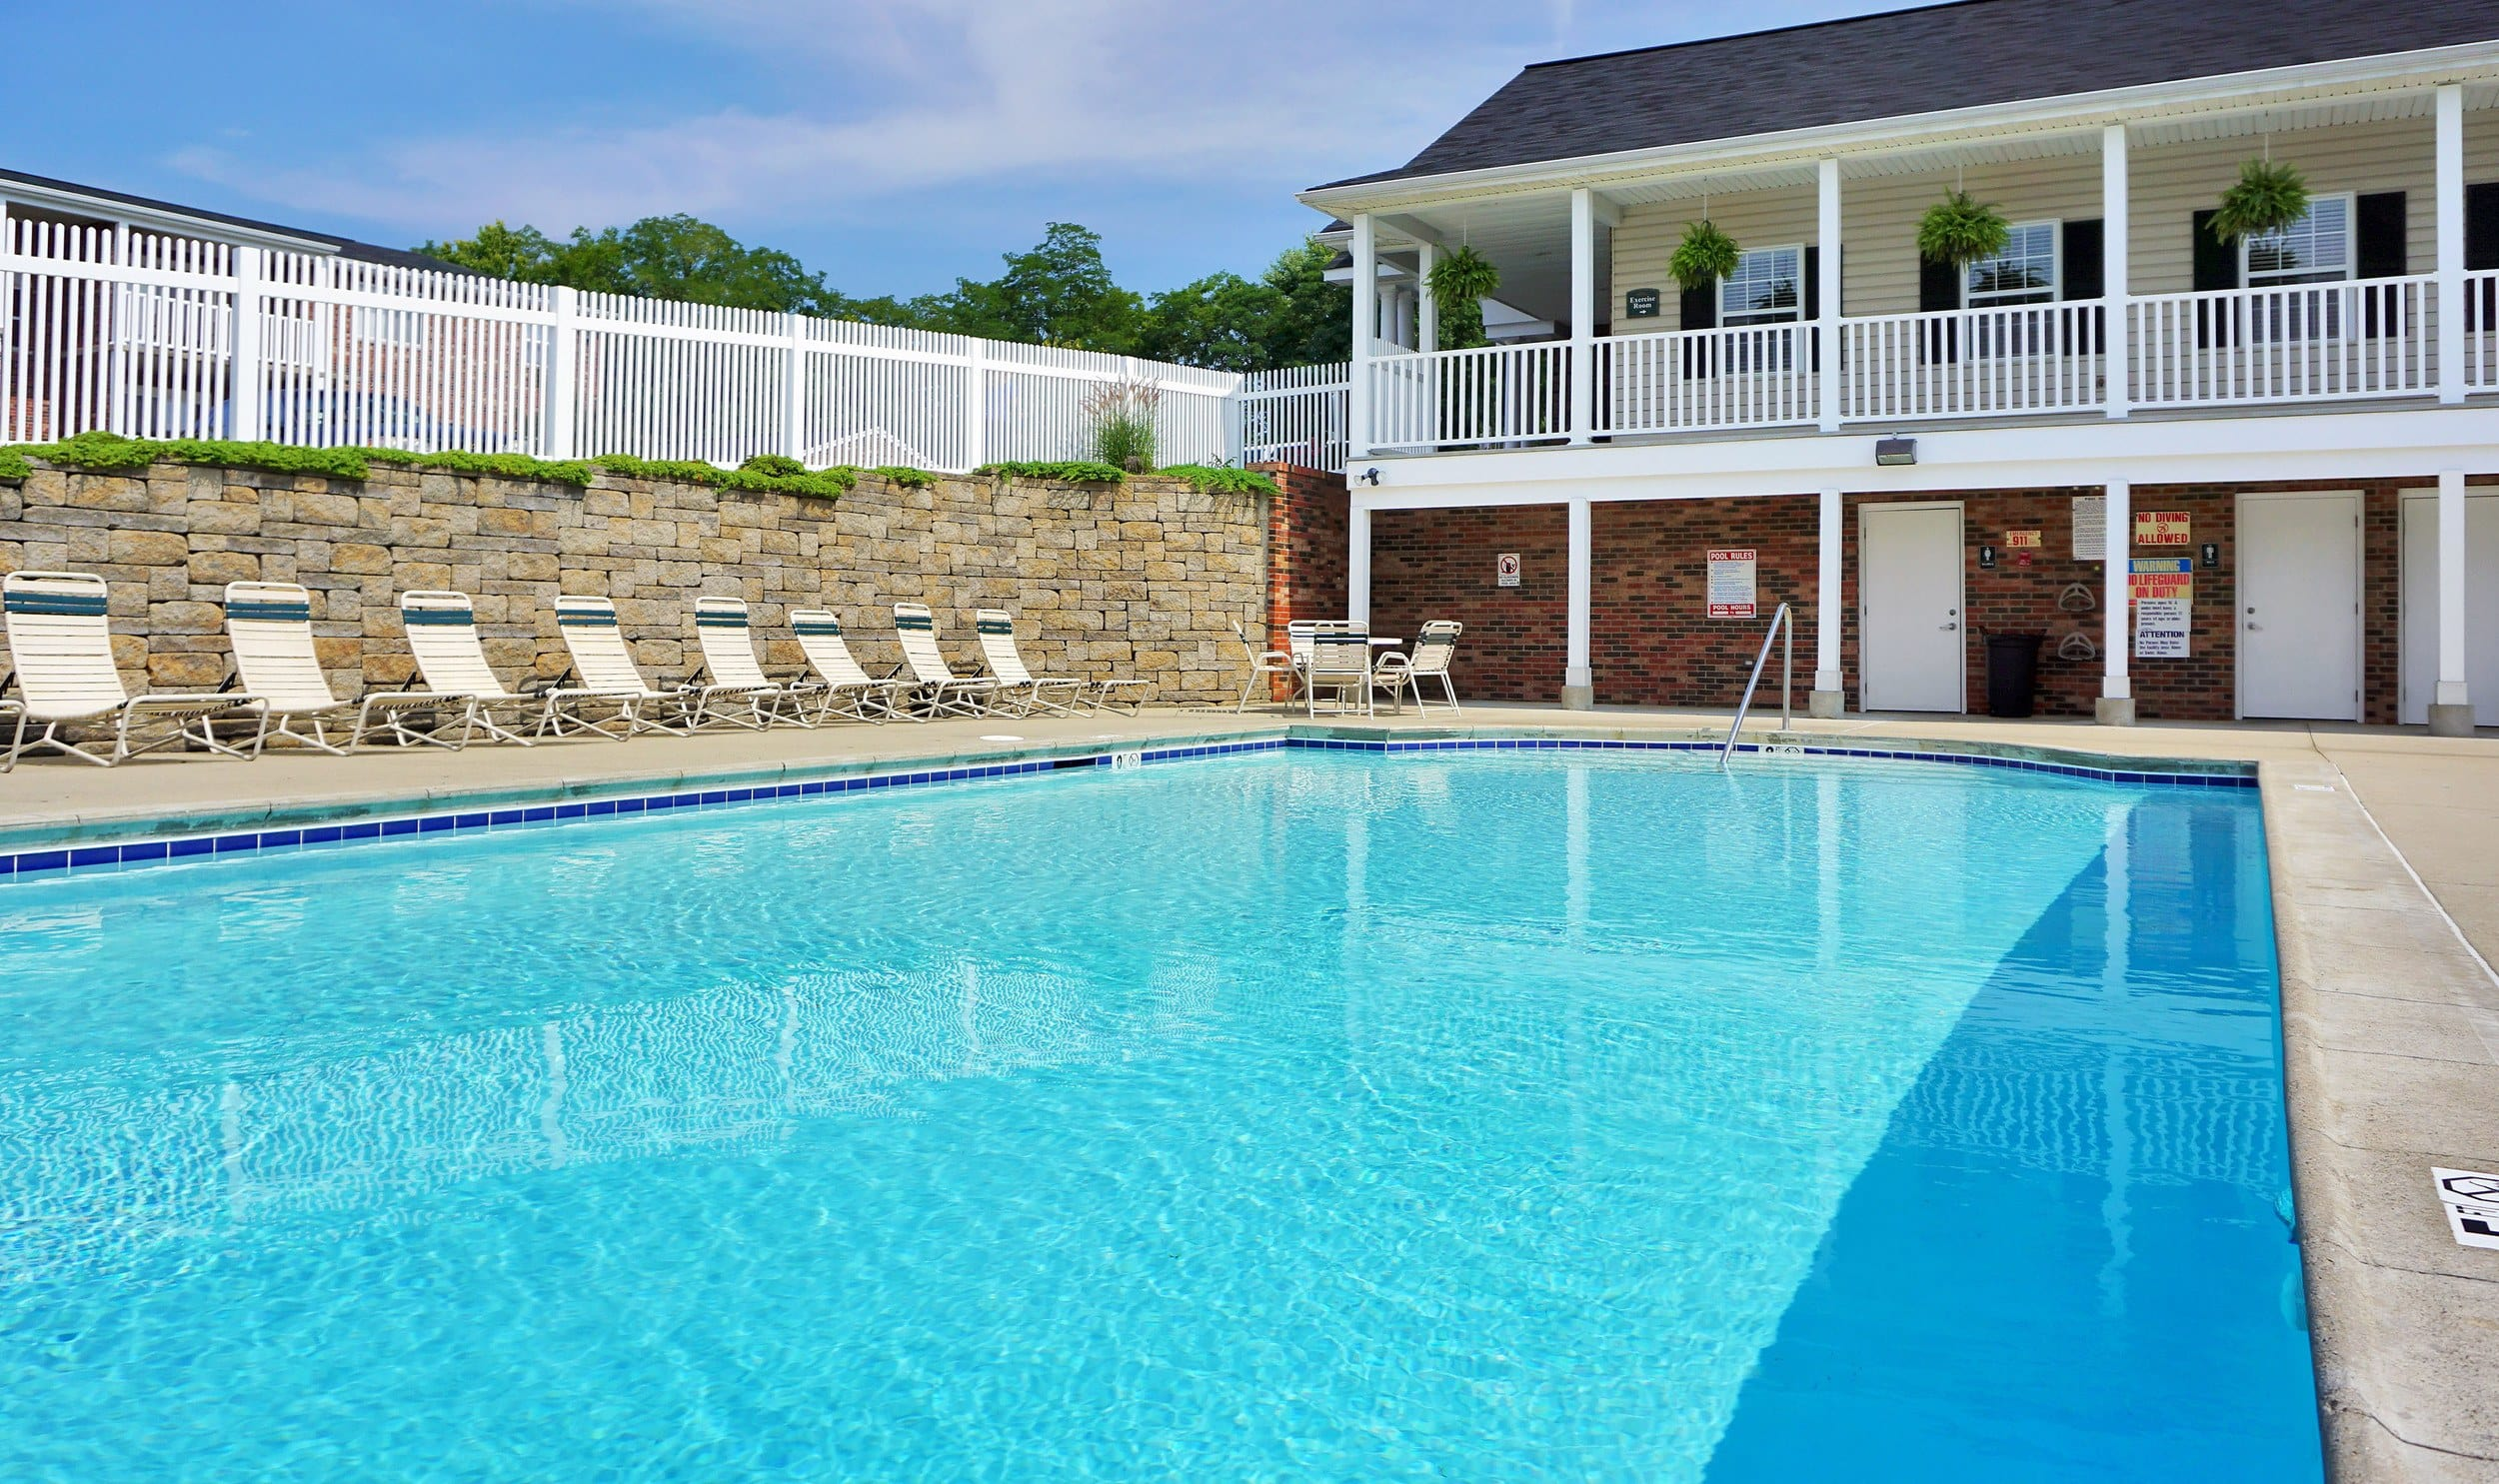 Swimming Pool at Reserve at Ft. Mitchell Apartments in Ft. Mitchell, KY